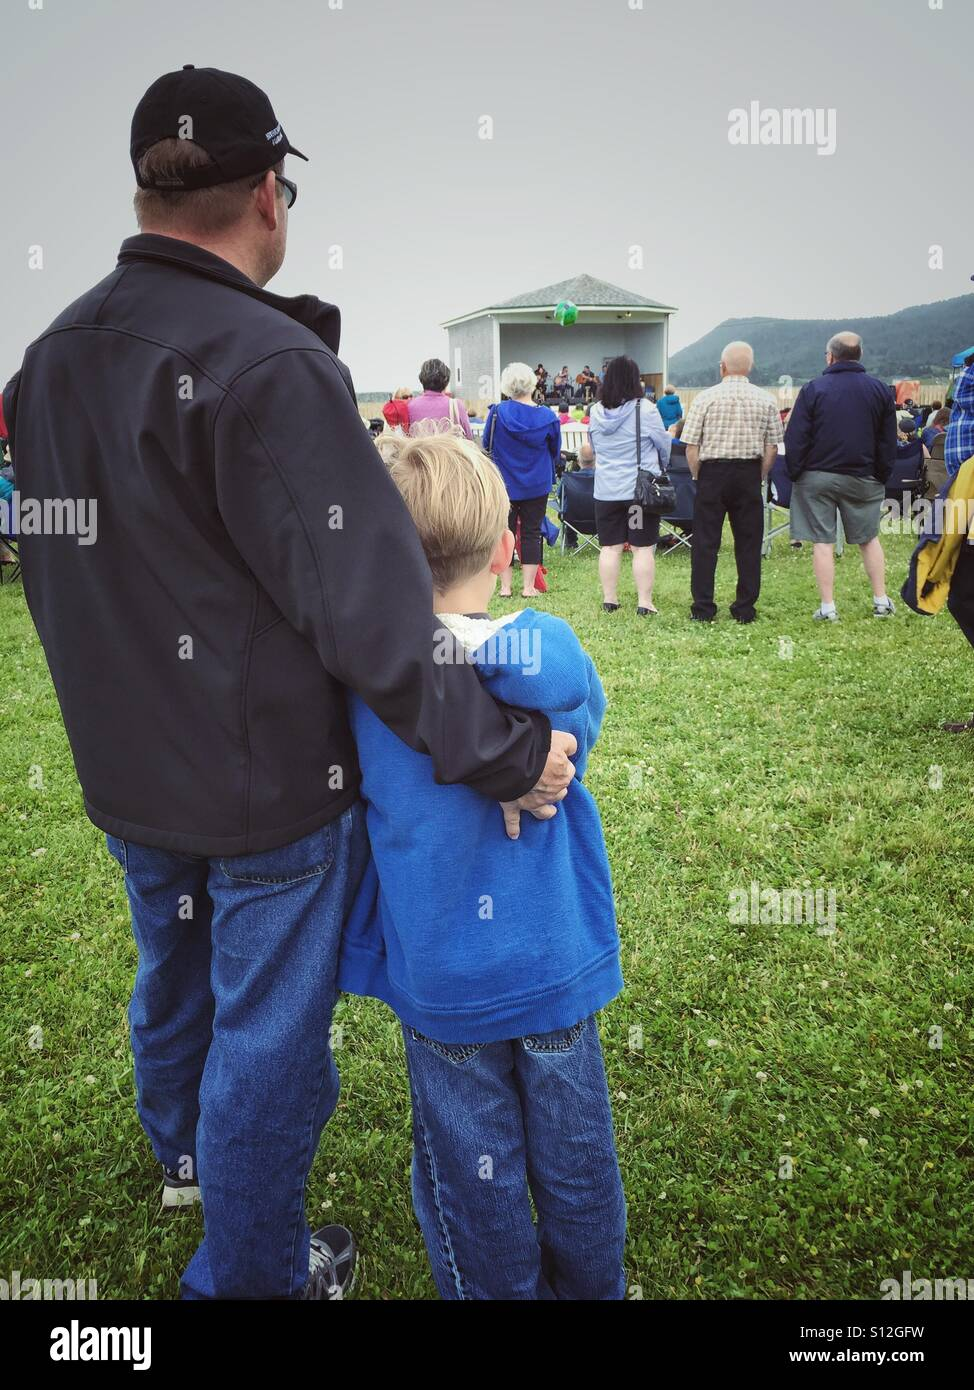 Father and son enjoy the entertainment at the Southern Shore Shamrock Folk Music Festival in Ferryland, Newfoundland, - Stock Image